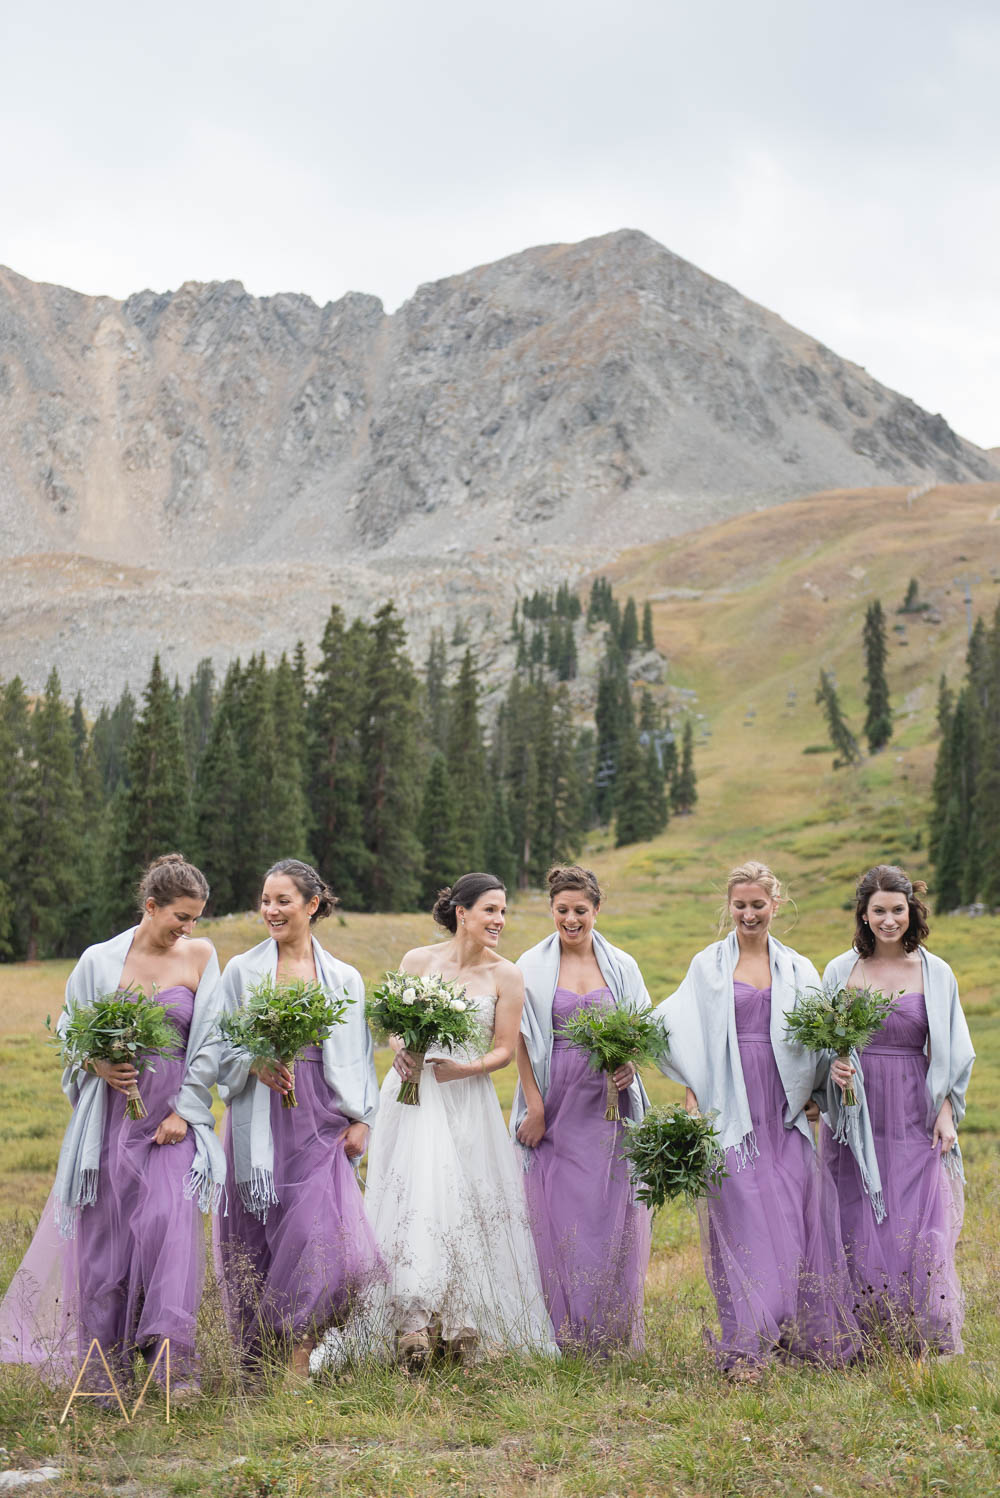 AshleighMillerWeddings-JennyAllen-ArapahoeBasin-Keystone-Colorado-2406.jpg